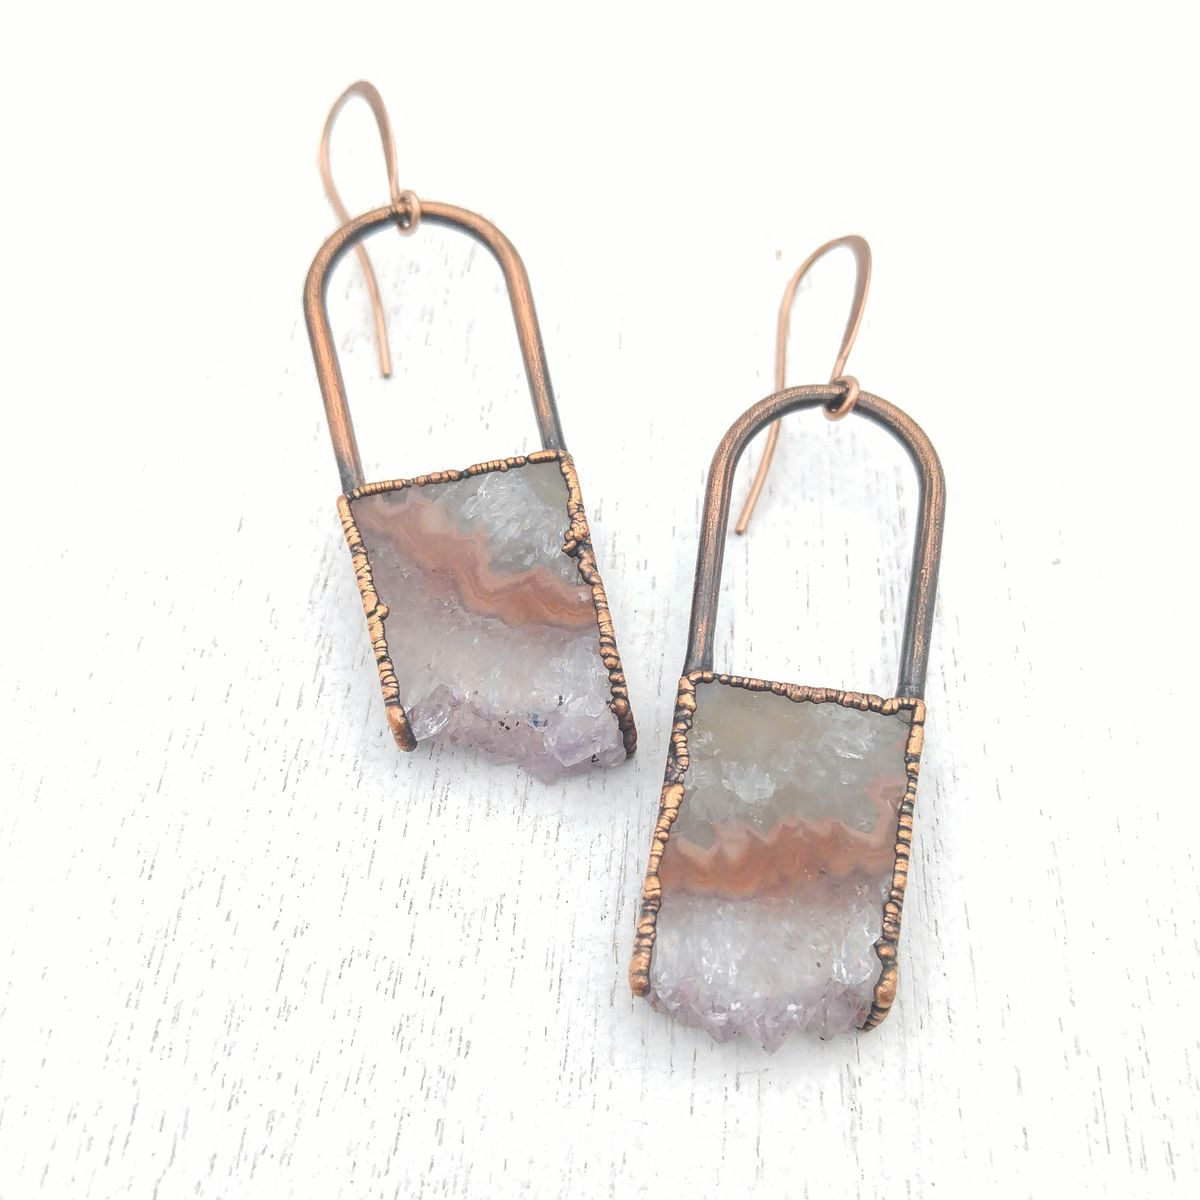 Amethyst Slice Stirrup Earrings - product images  of